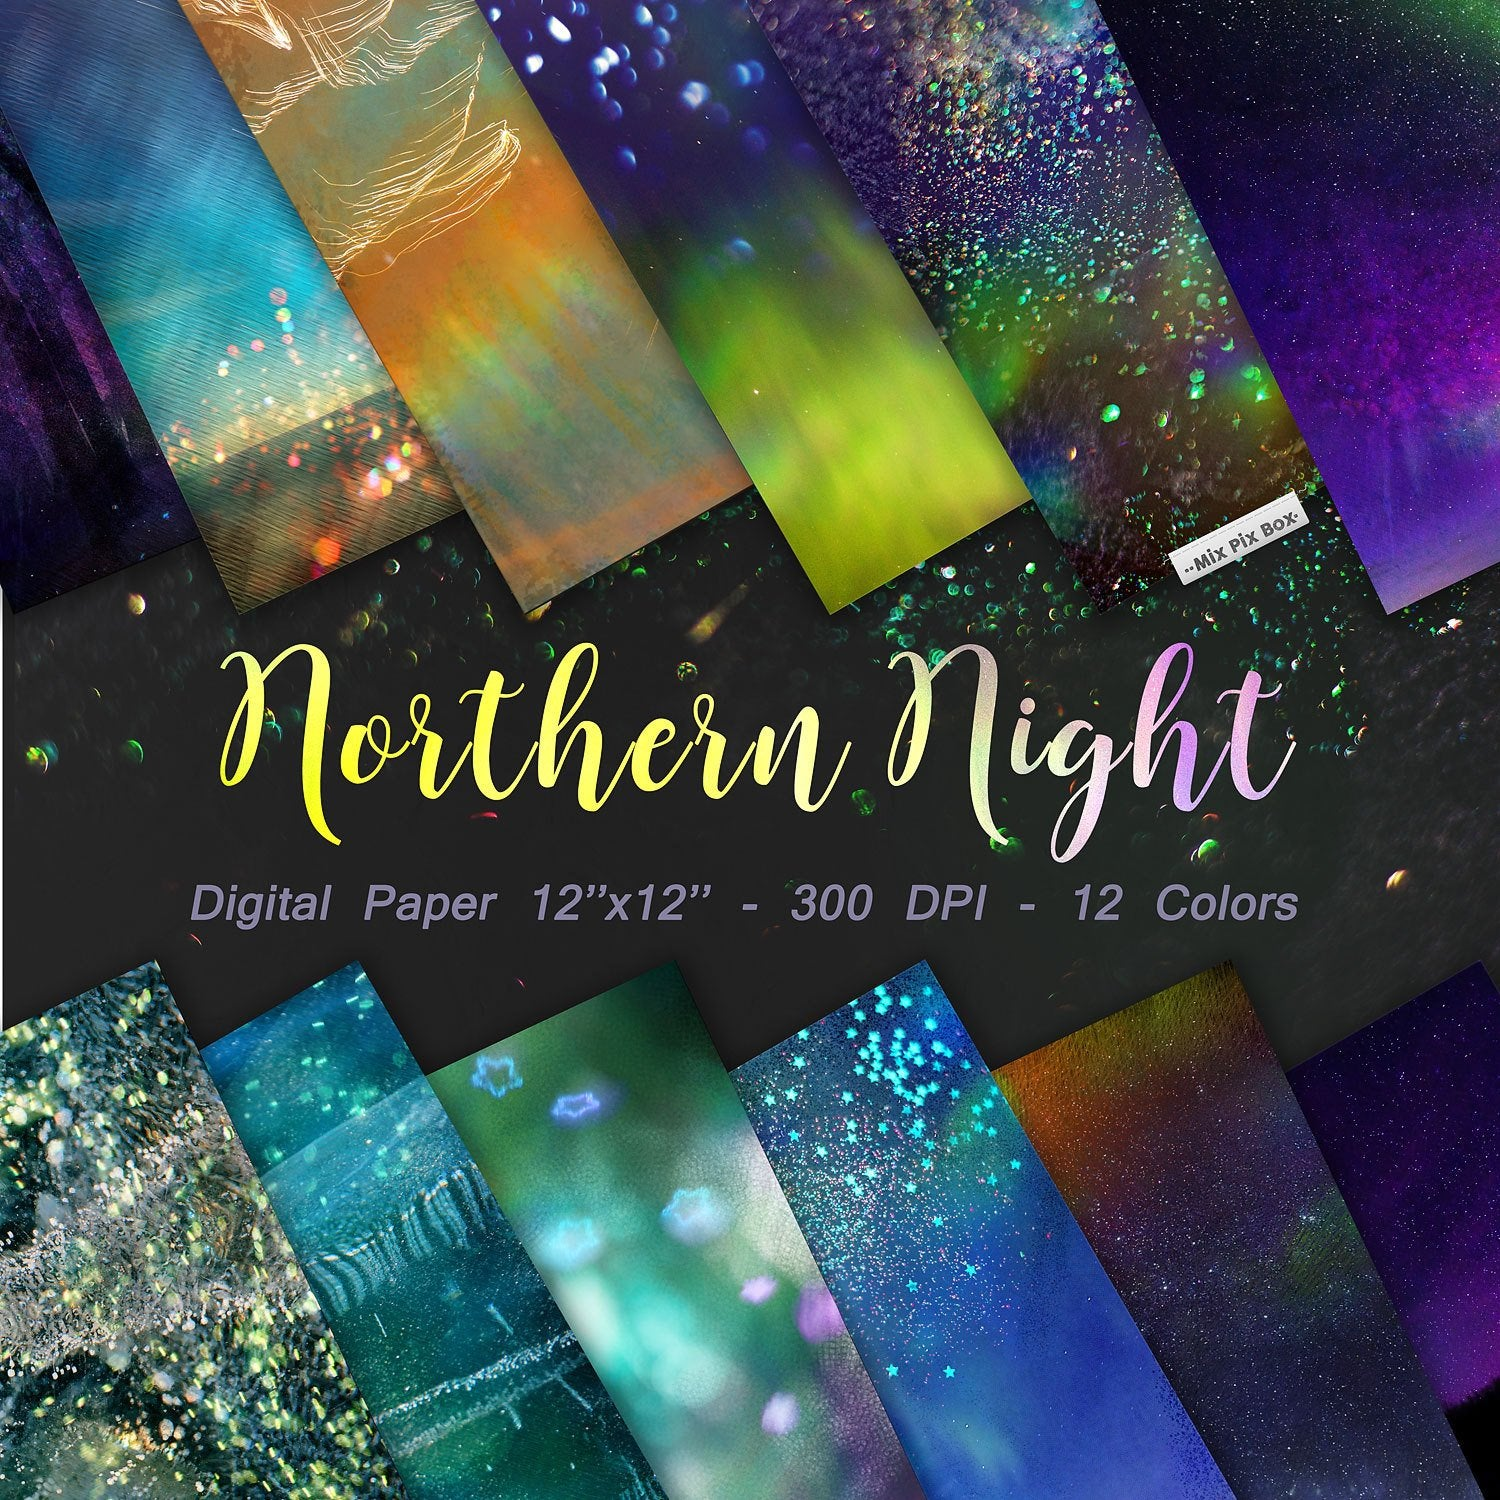 Northern Lights Digital Paper